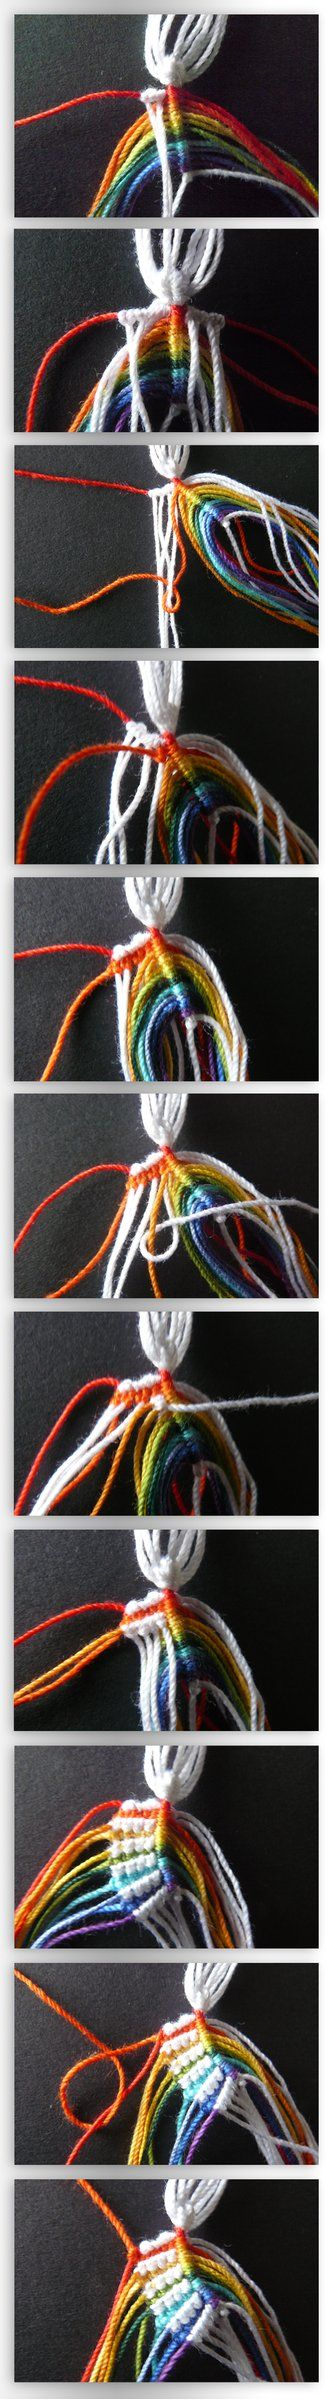 Check the knot variation I used: Part I: Pattern Part II: Part III: Part IV: Part V: